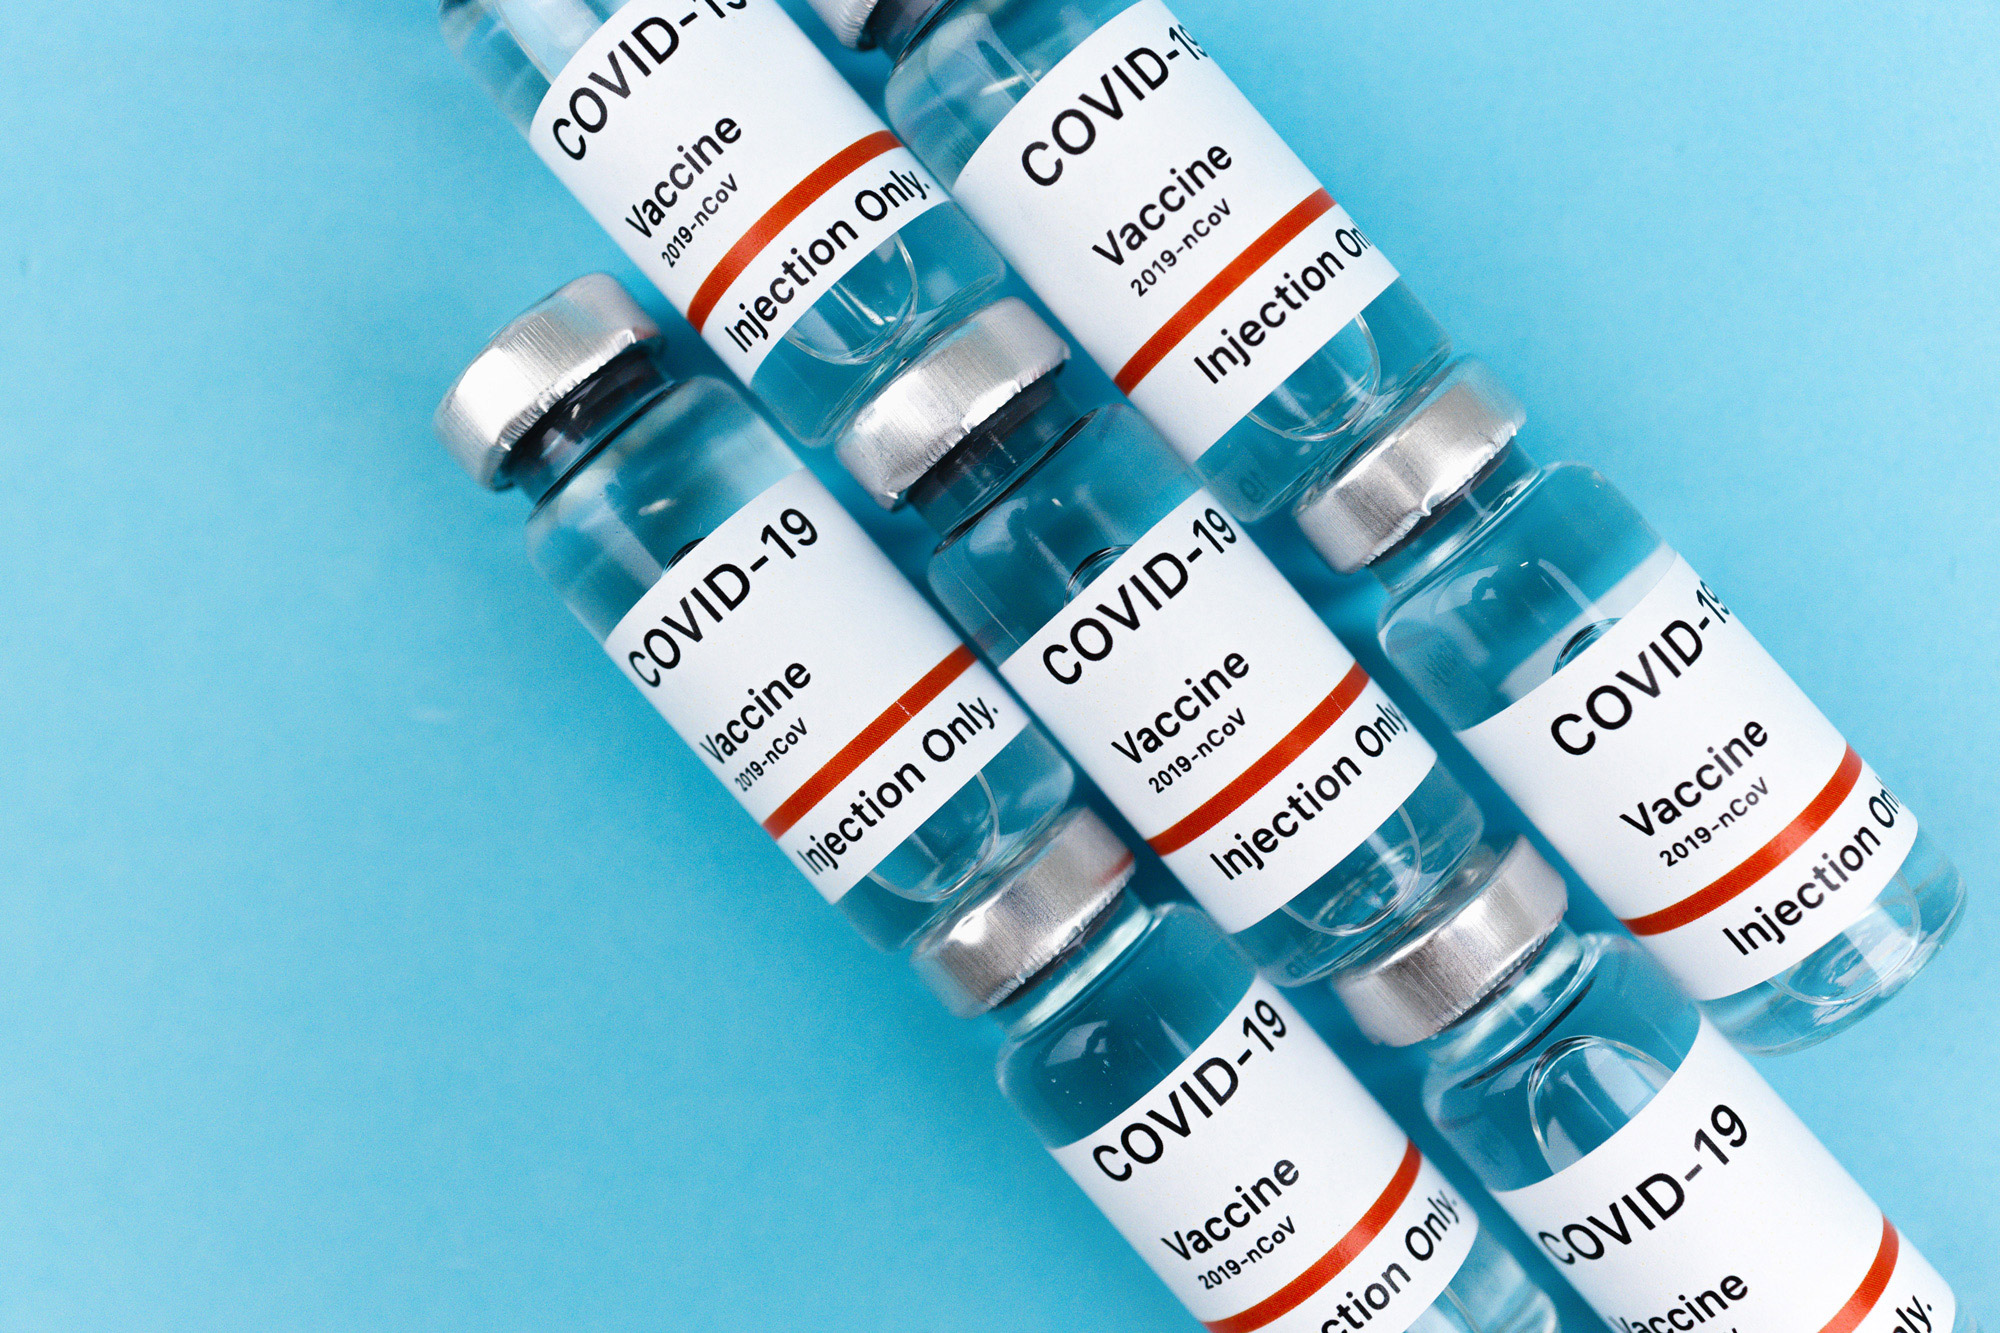 Information on COVID-19 vaccination for Parkinson's disease patients